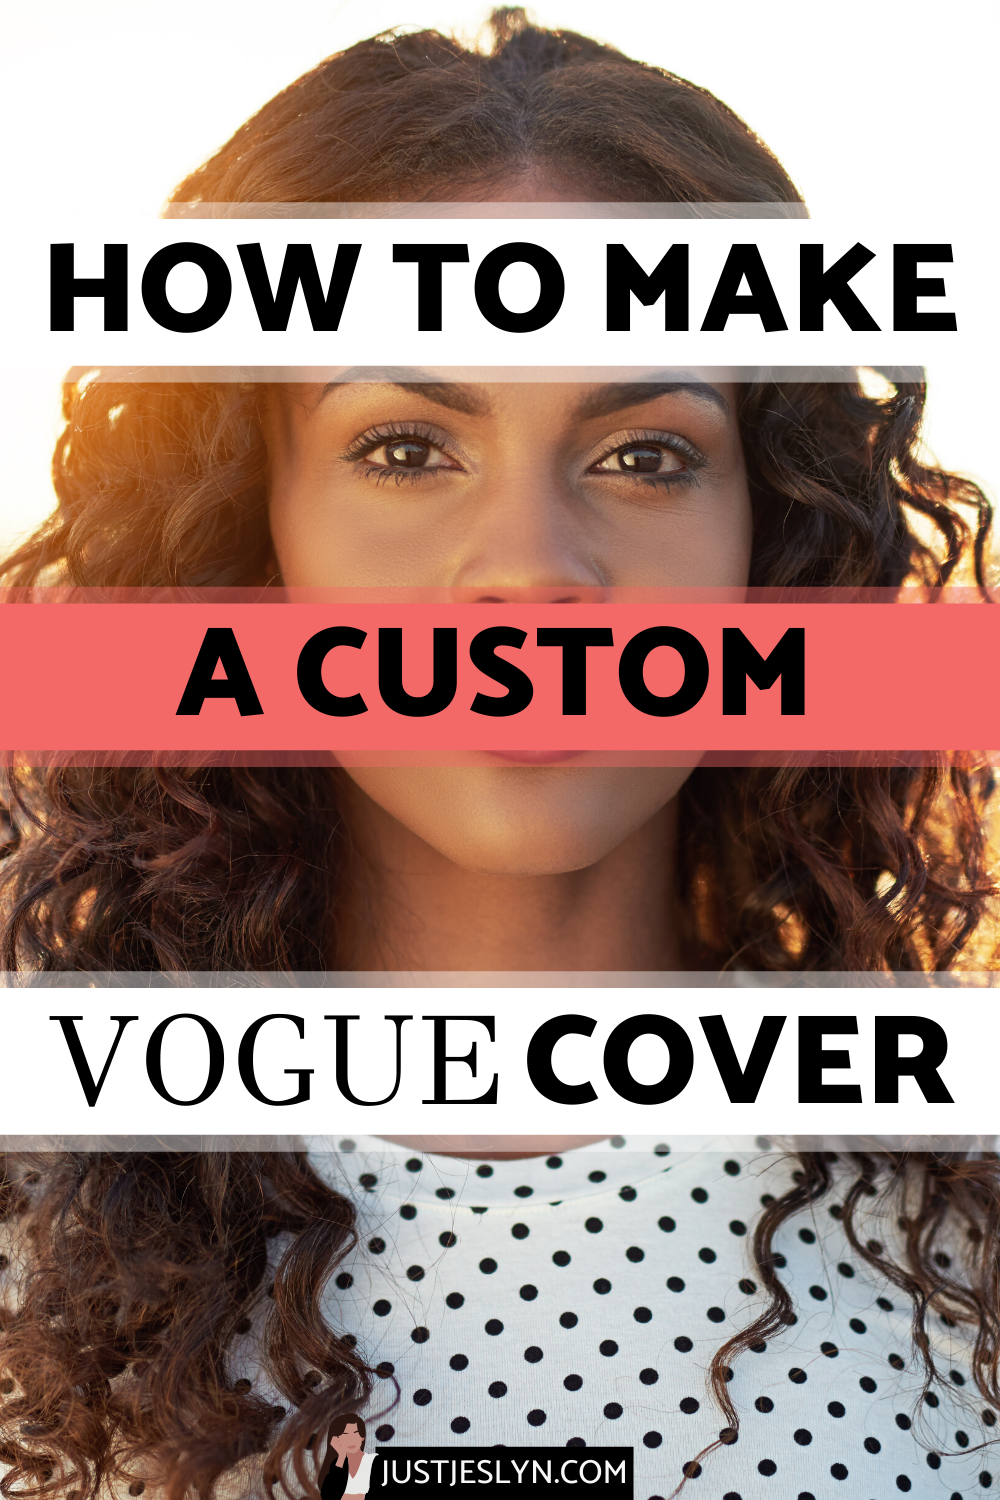 Vogue Challenge How To Make An Awesome Custom Vogue Cover Just Jes Lyn Vogue Covers Vogue Vogue Magazine Covers